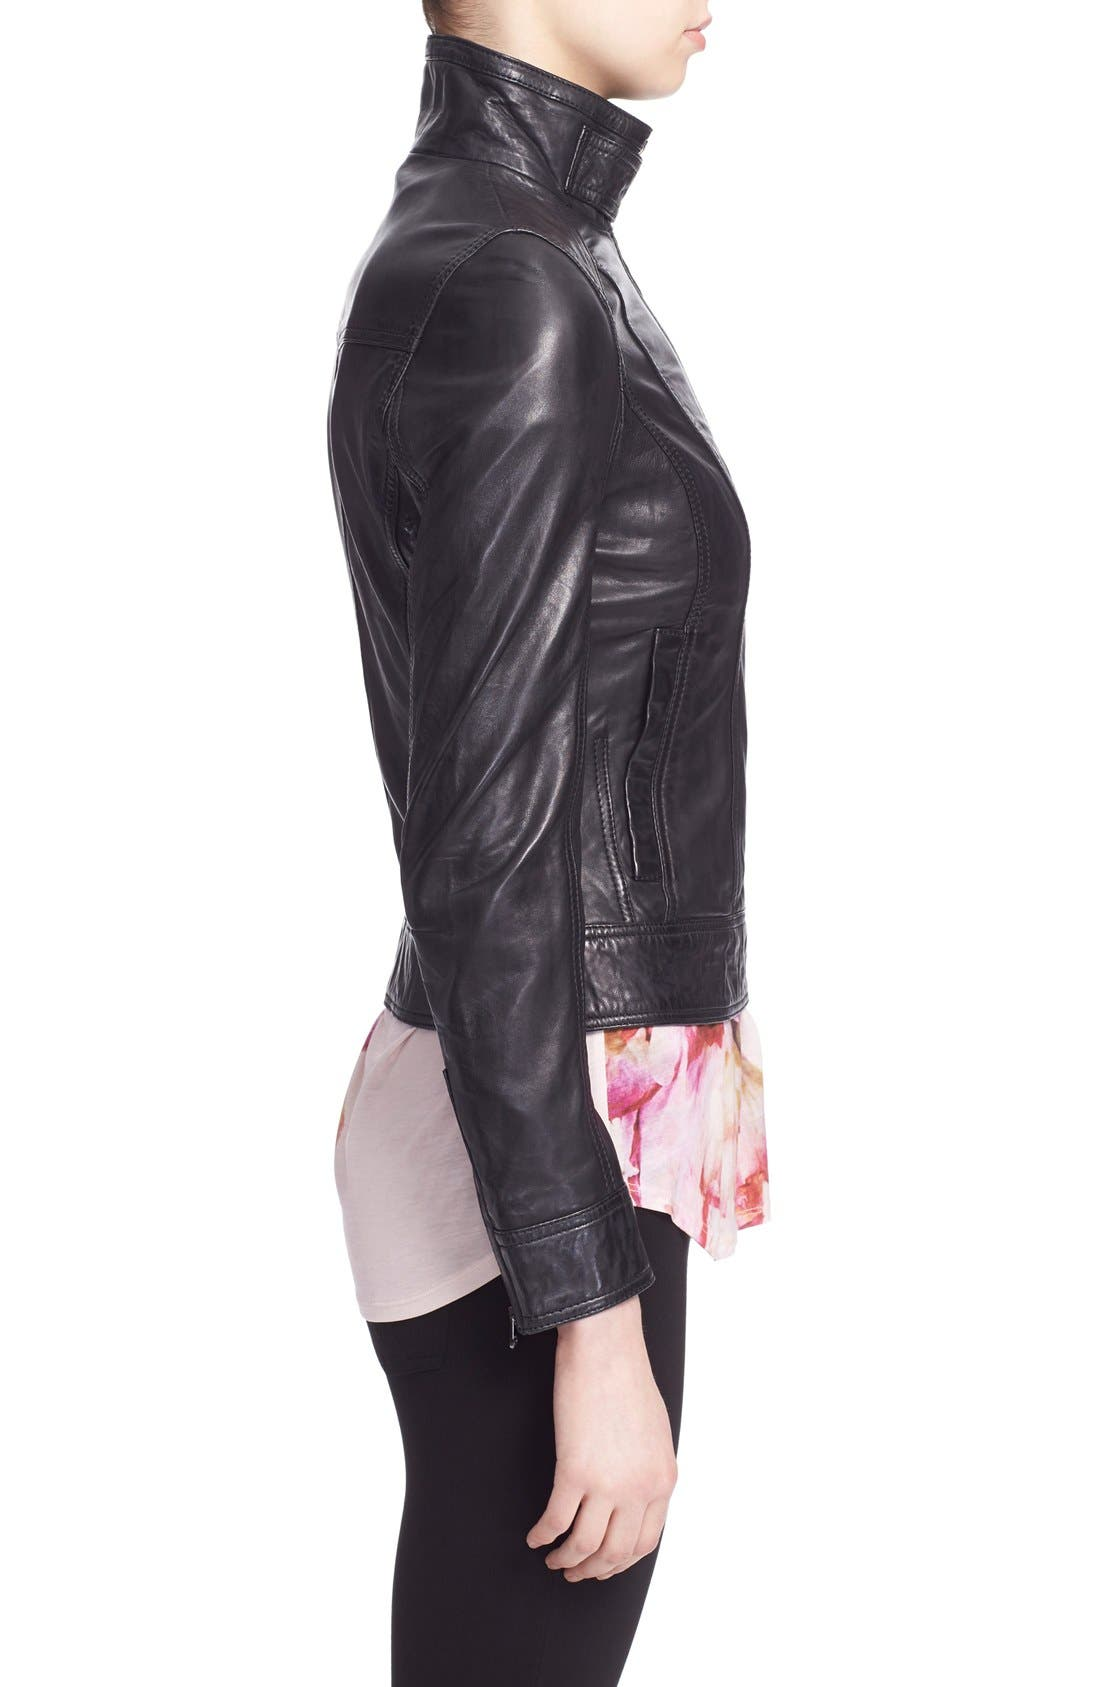 'Roark' Stand Collar Leather Jacket,                             Alternate thumbnail 5, color,                             001